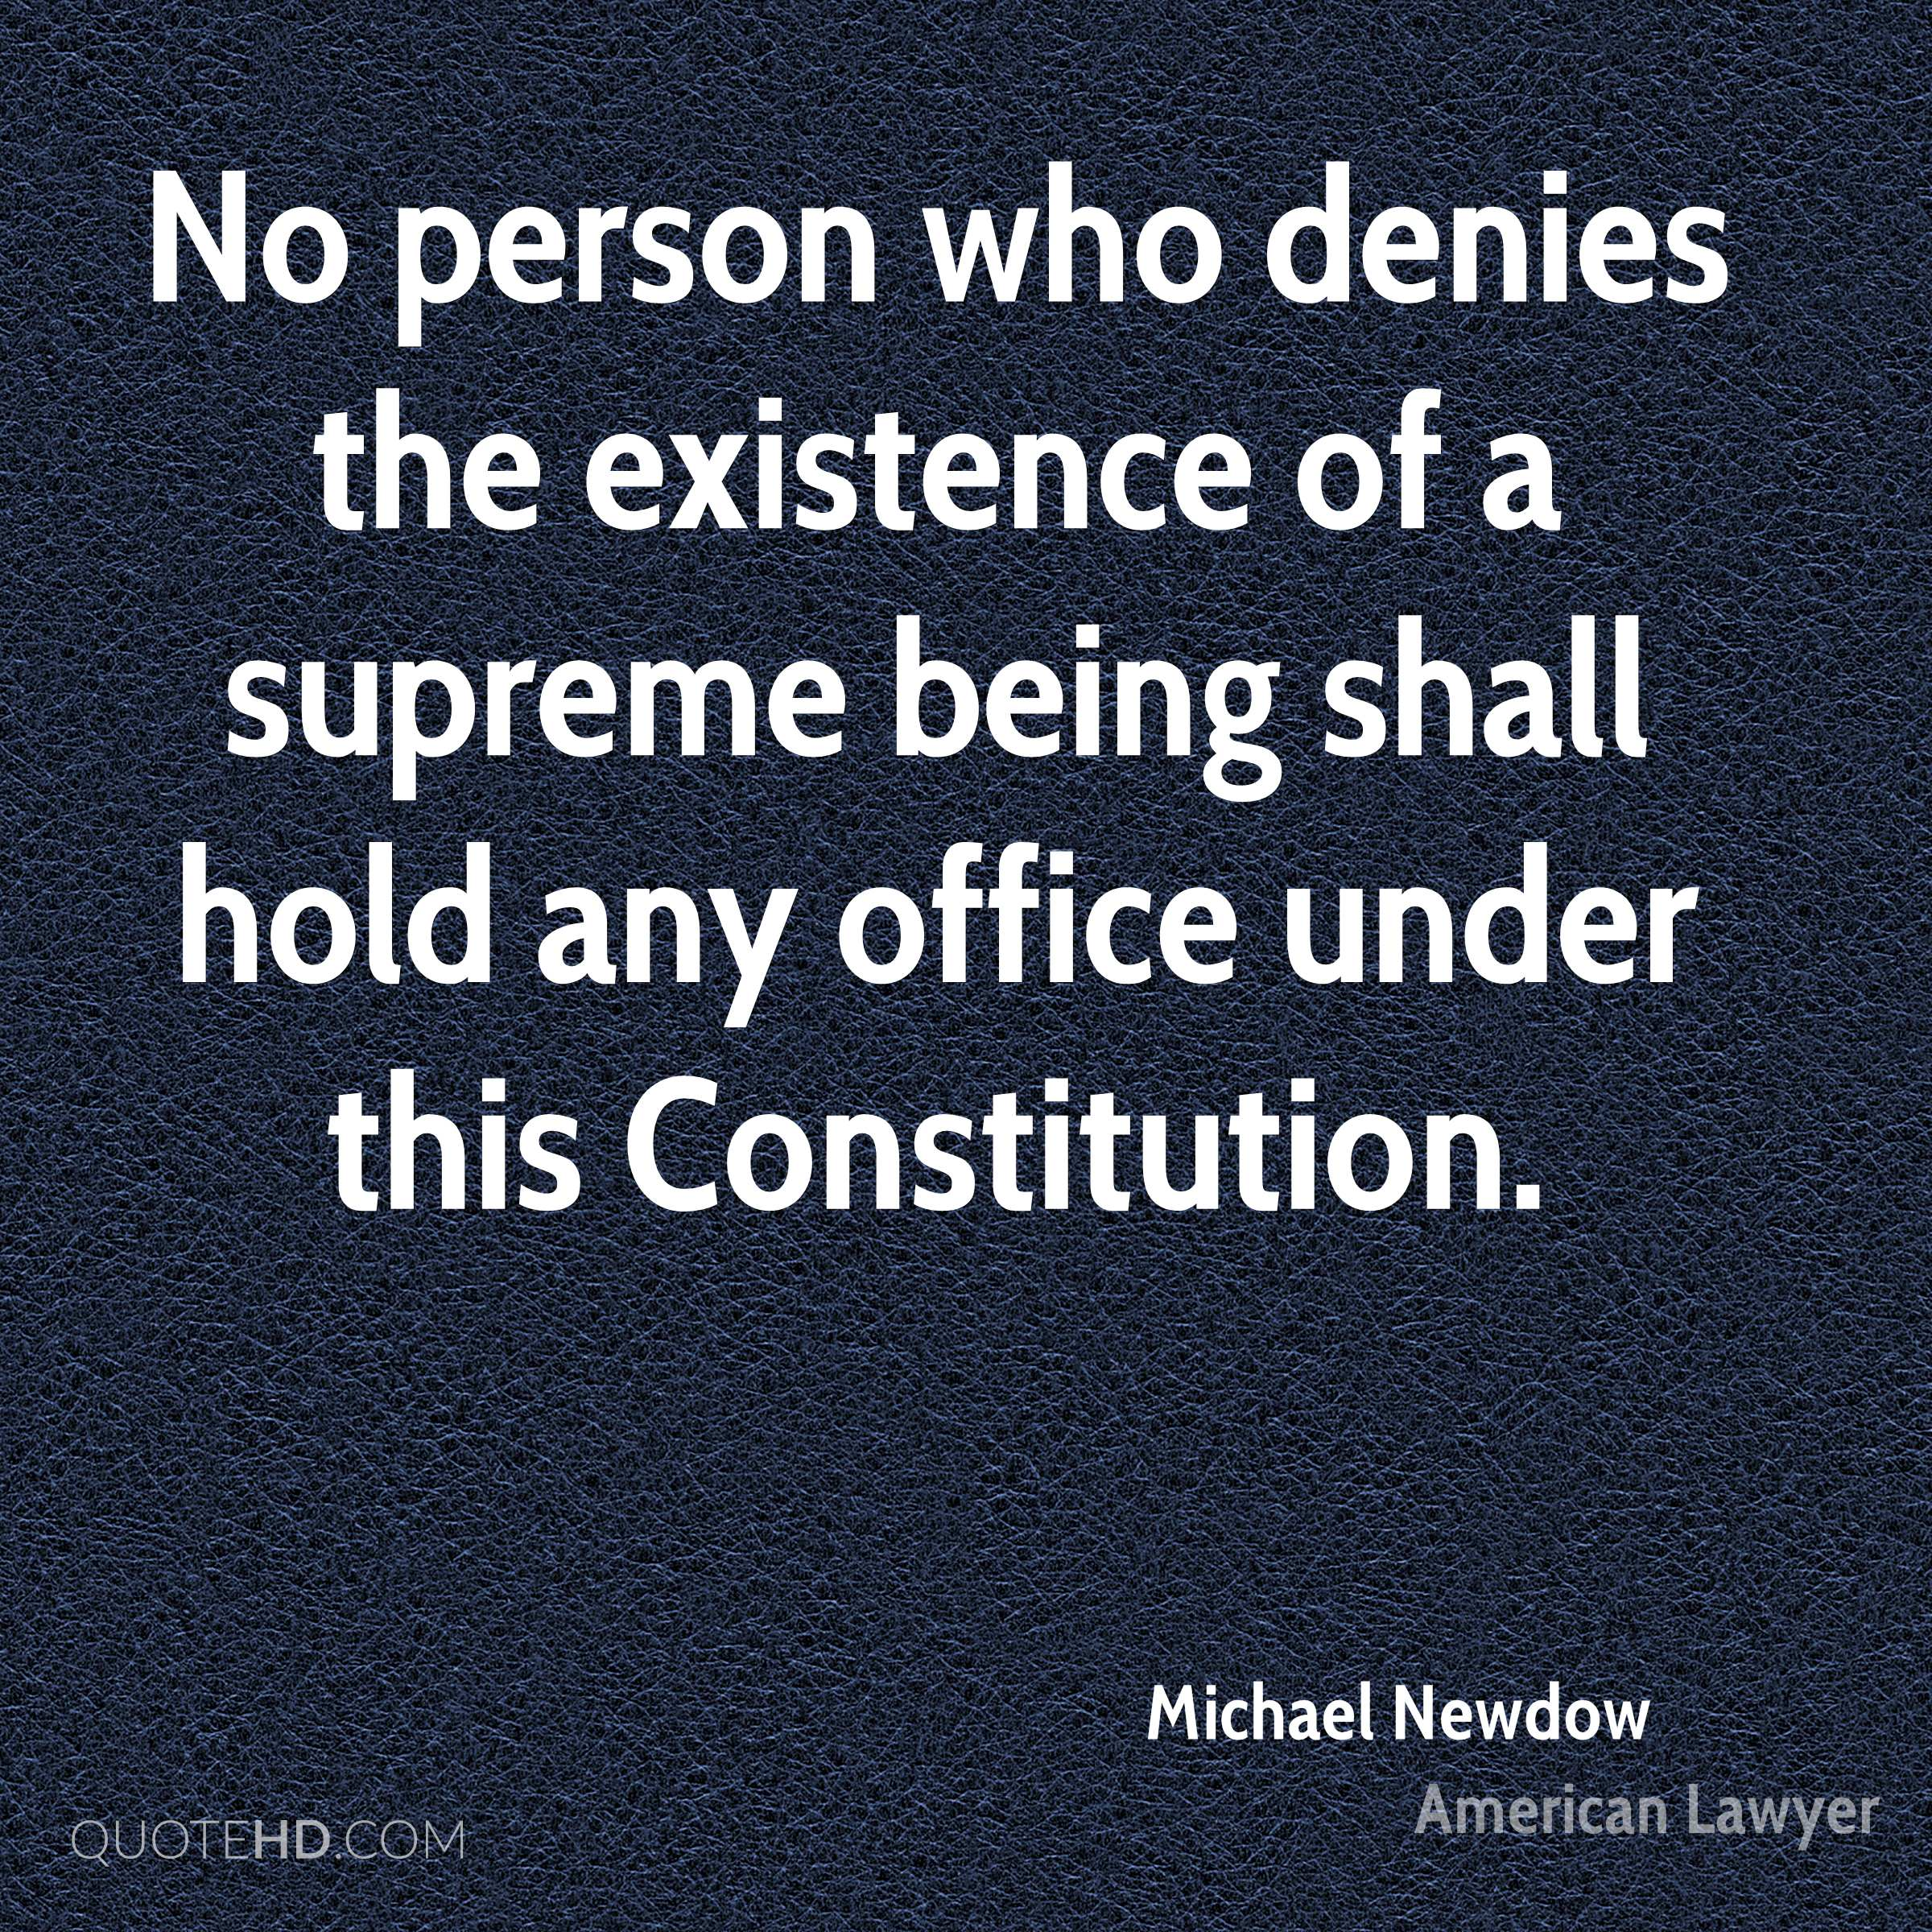 No person who denies the existence of a supreme being shall hold any office under this Constitution.